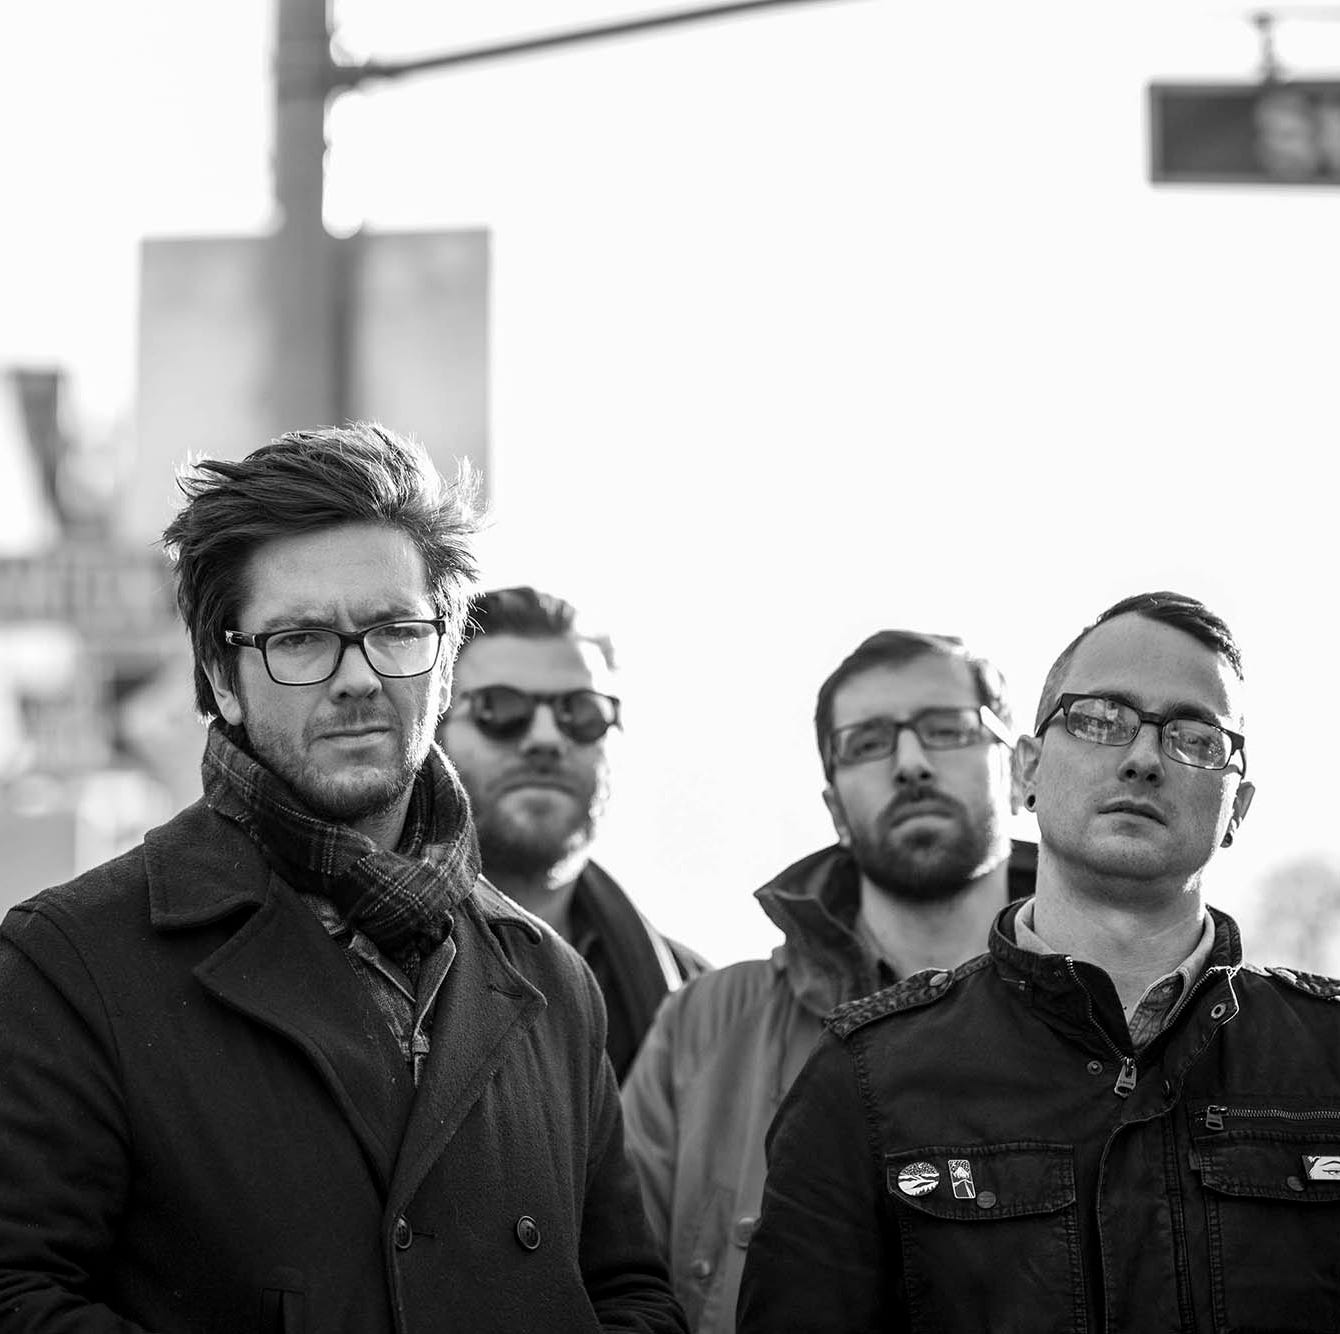 Milwaukee-based folk band Field Report to play The Howard in Oshkosh